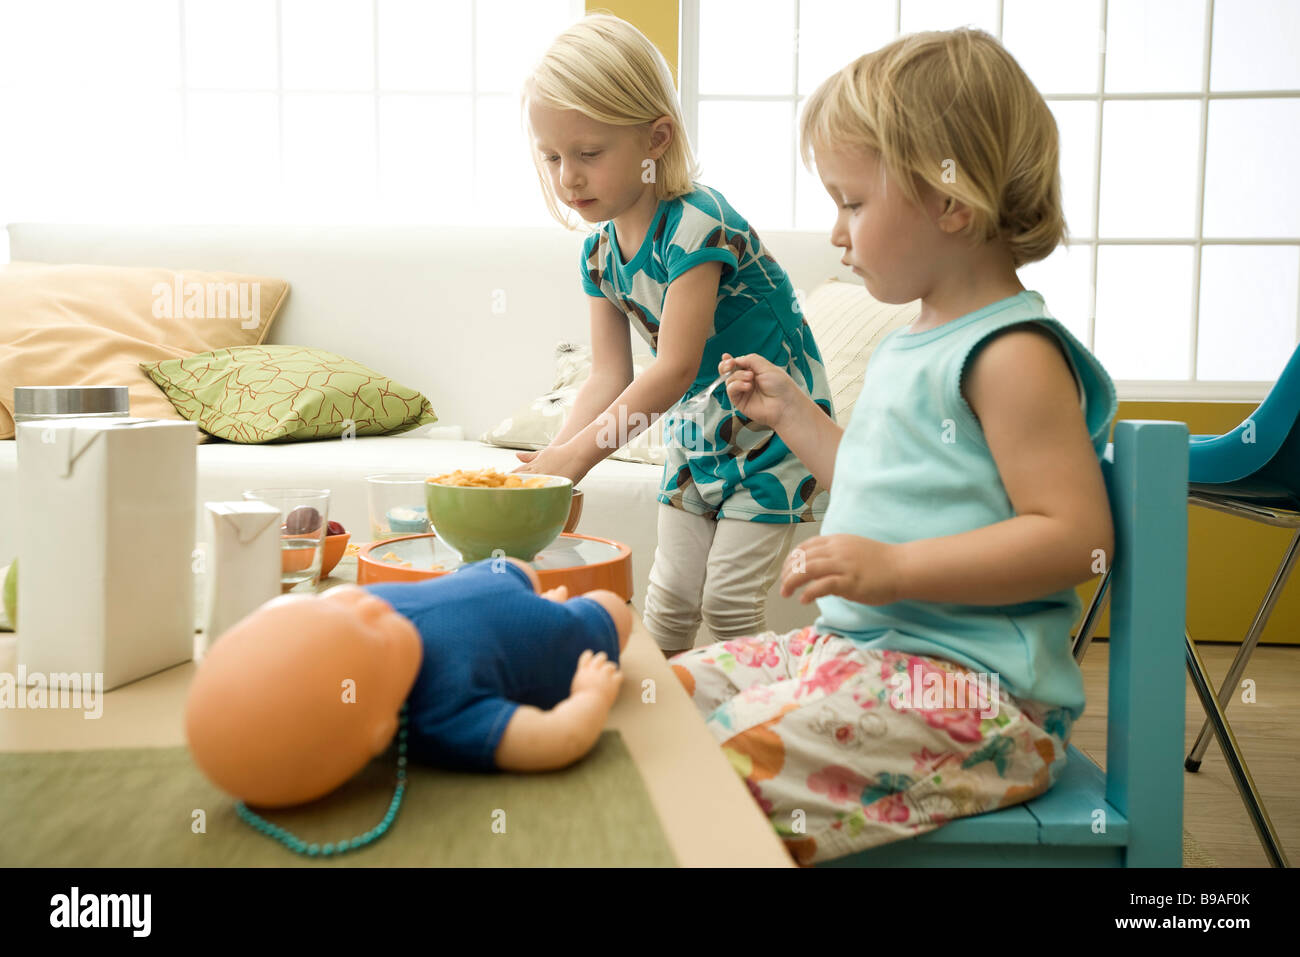 Little girls eating cereal at messy table - Stock Image